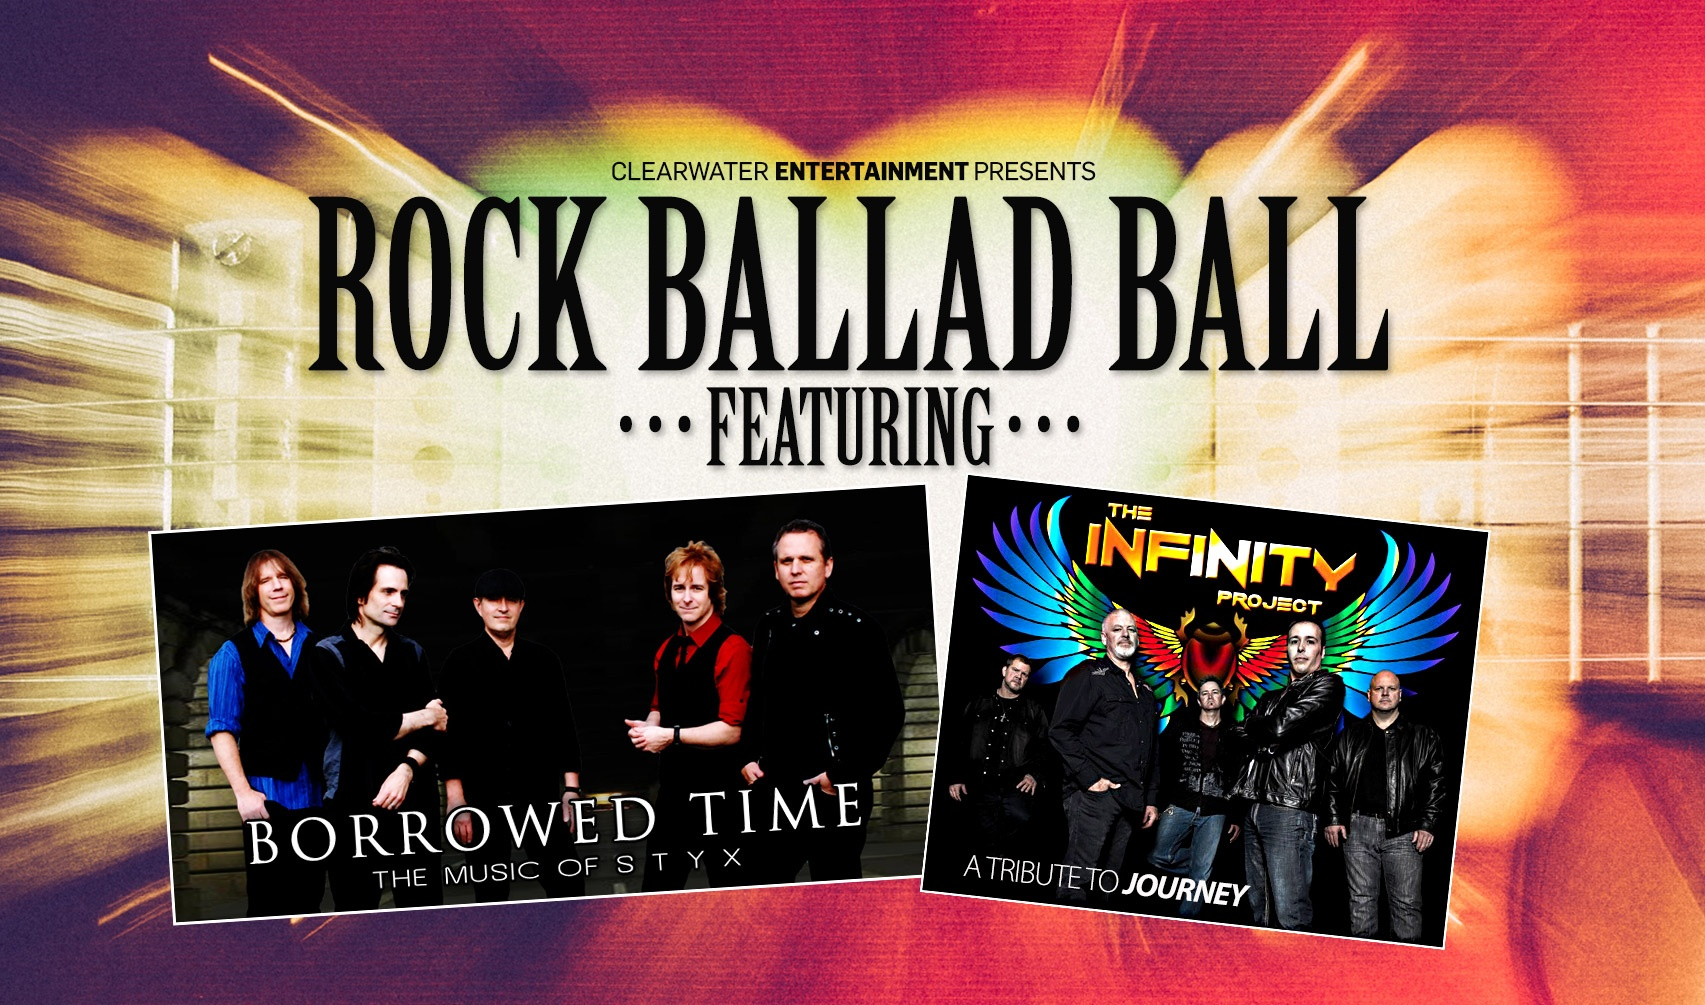 Rock Ballad Ball Feb 14th Clearwater Casino Event Center